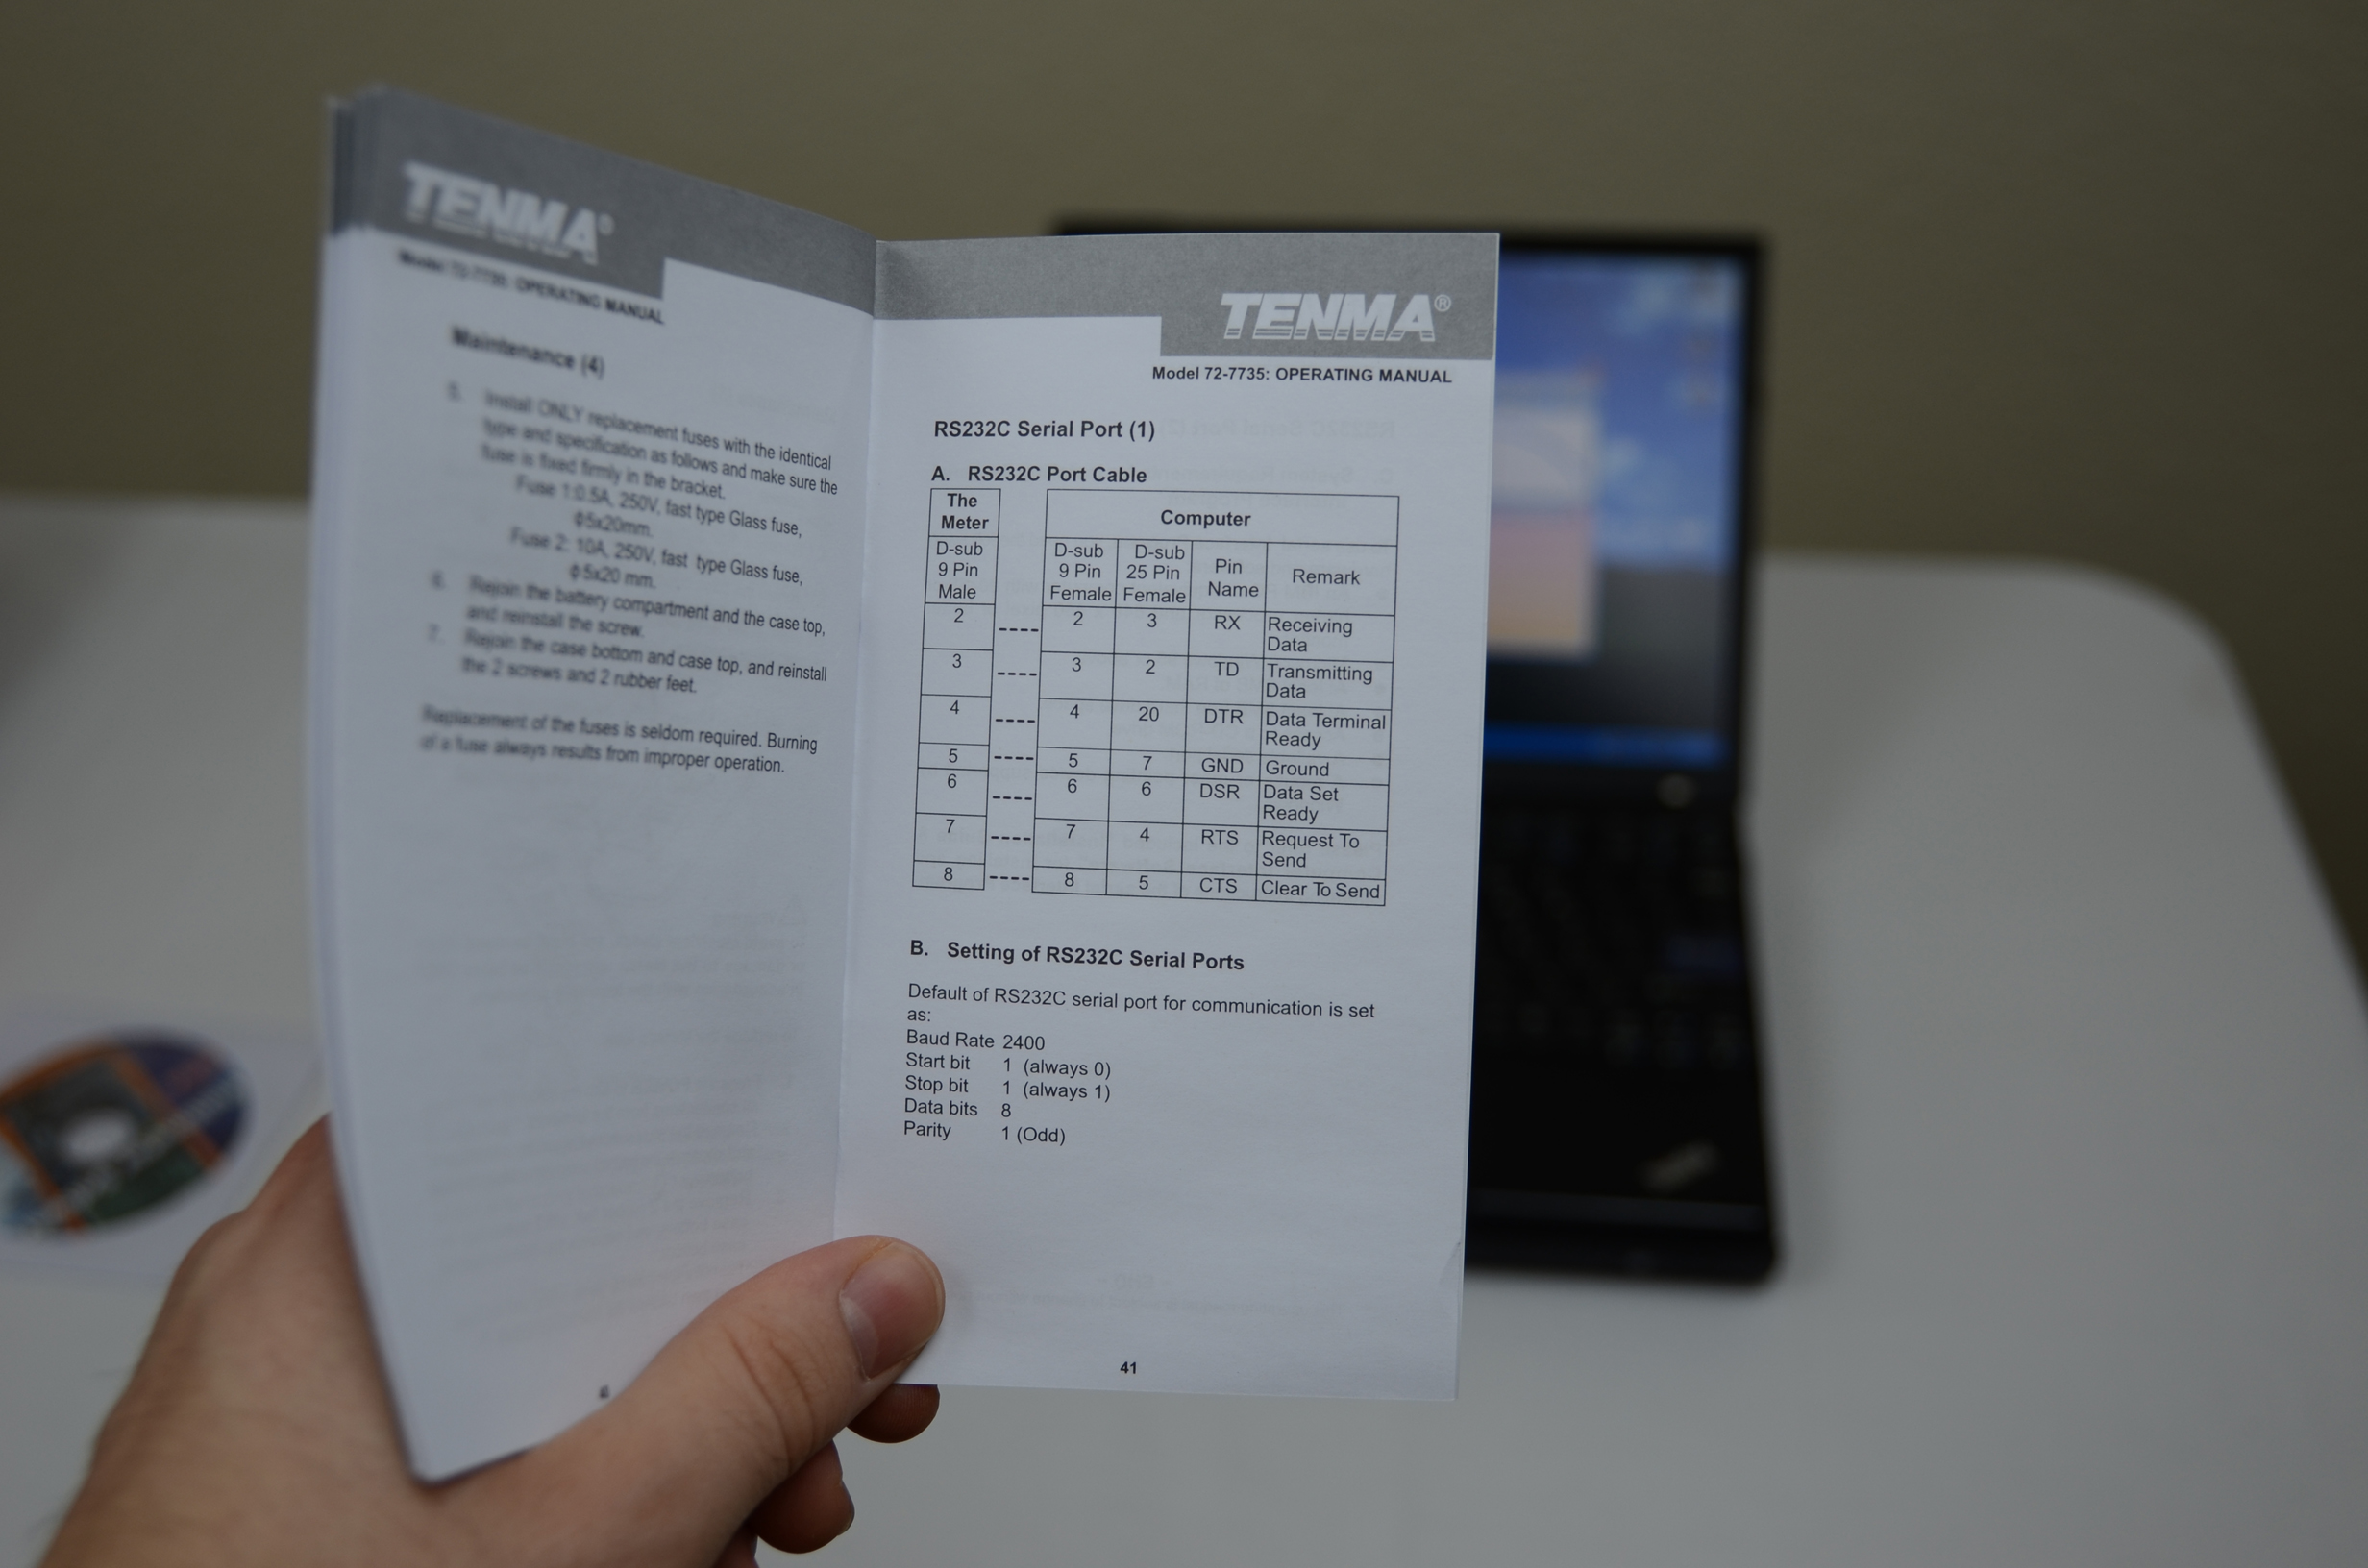 Tenma 72 7735 Pc Interface Pyroelectro News Projects Tutorials Simple Pic Usb Schematic You Can Follow The Pdf File On Cd Rom To Try And Get Things Connected Or Just Do What I Did Users Manual Lists Communication Type